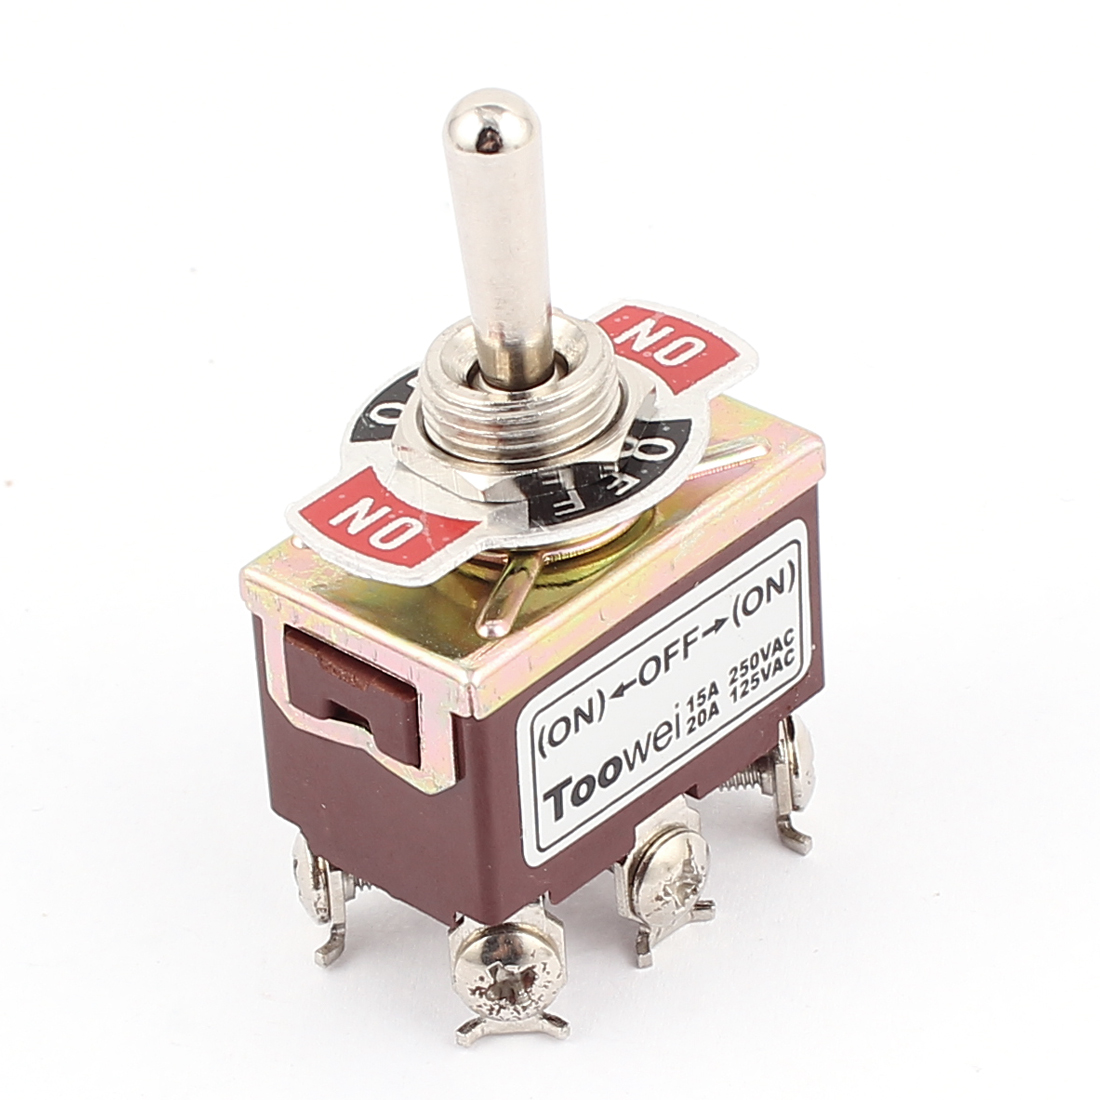 250VAC 15A 125VAC 20A 6 Screw Terminals DPDT 3 Position ON/OFF/ON Momentary Toggle Switch